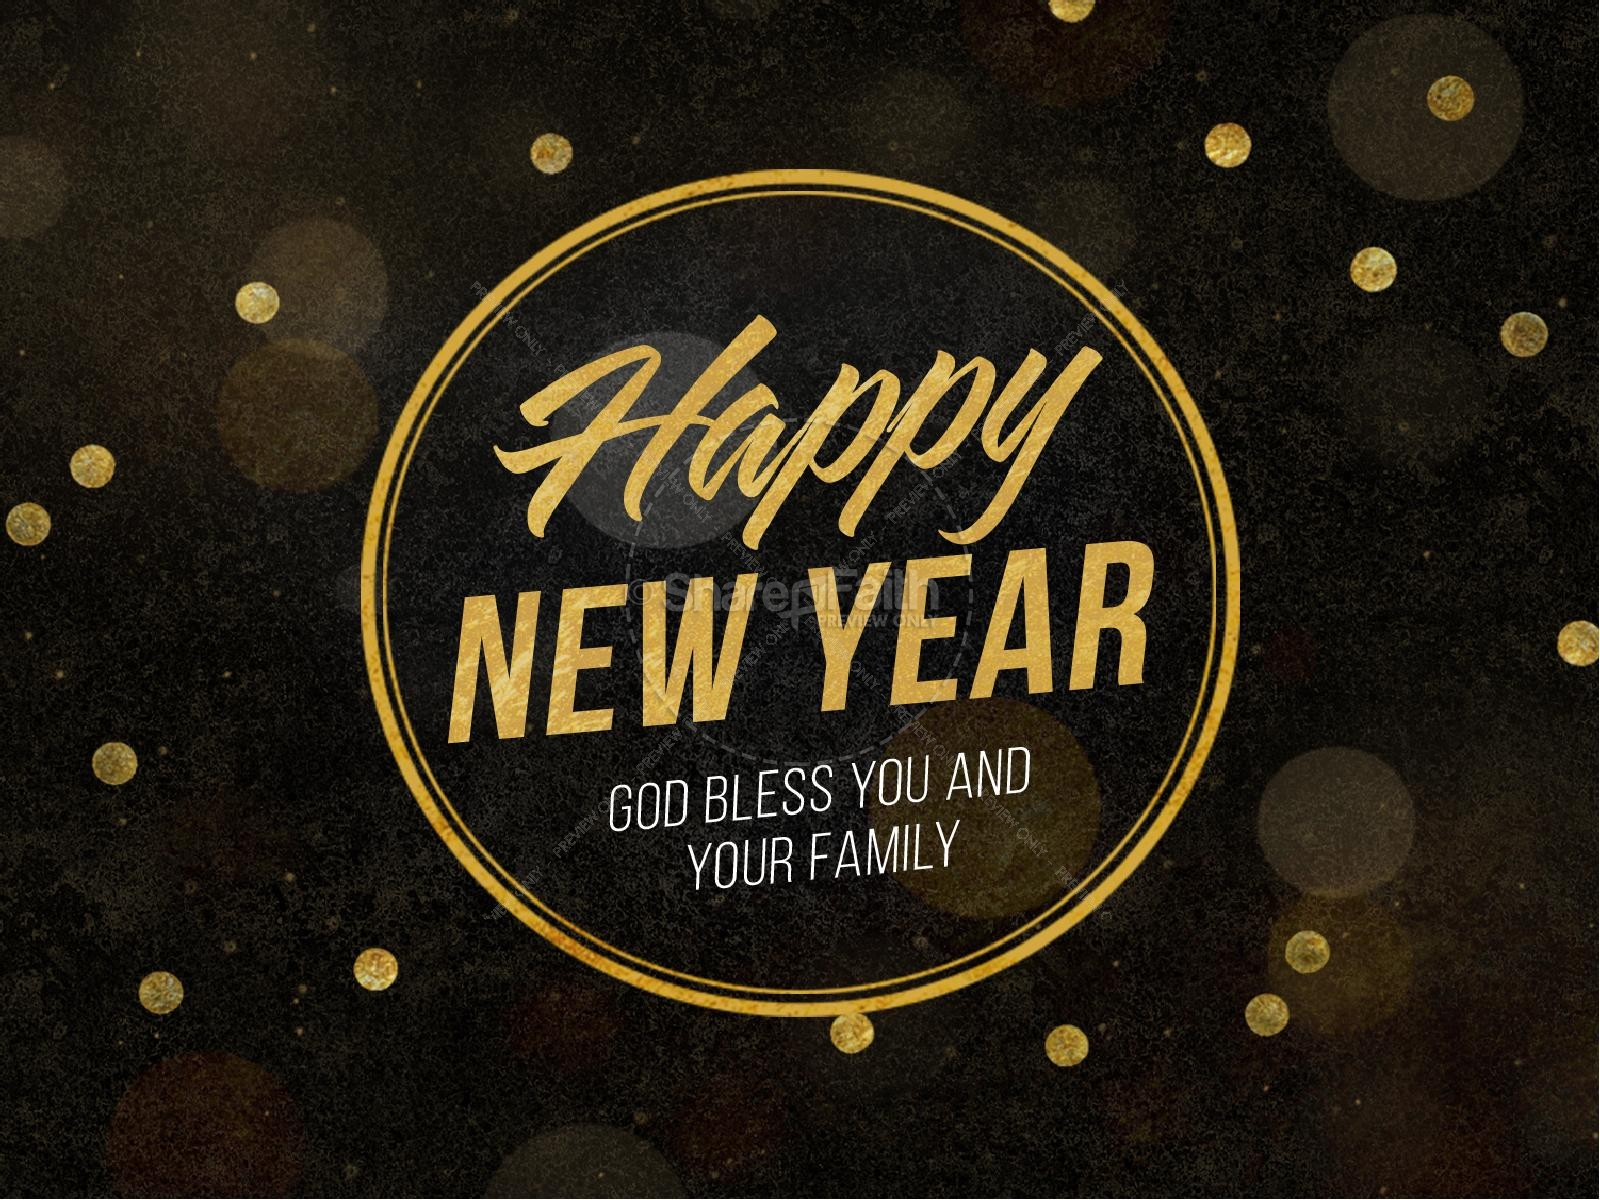 Happy New Year Blessings Church PowerPoint